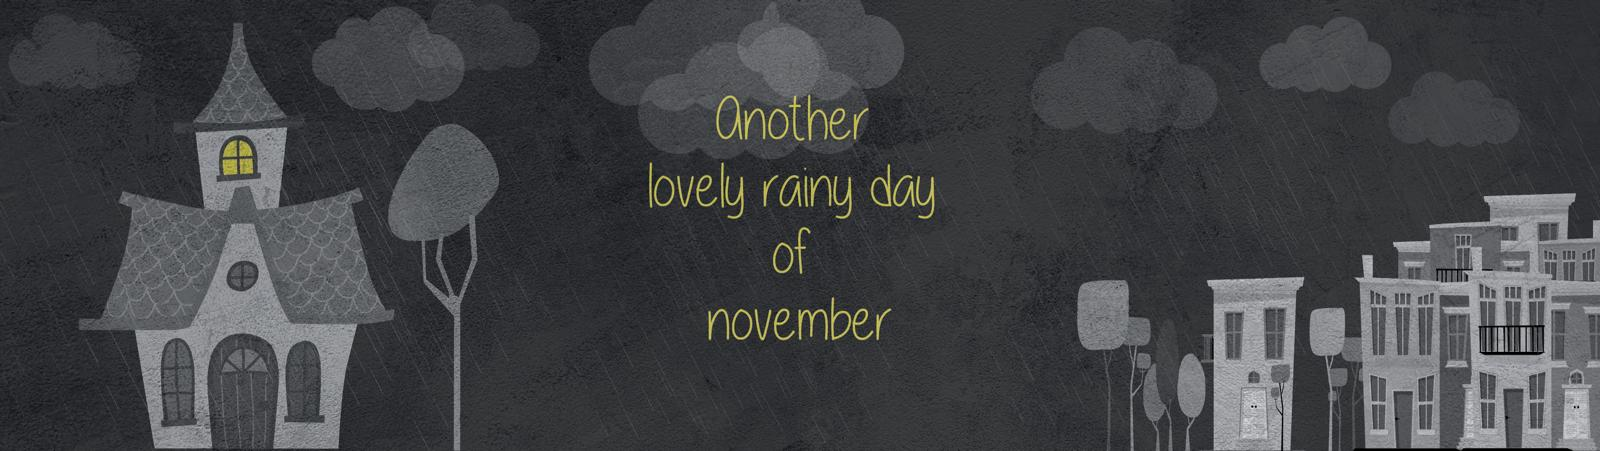 another lovely rainy day of november